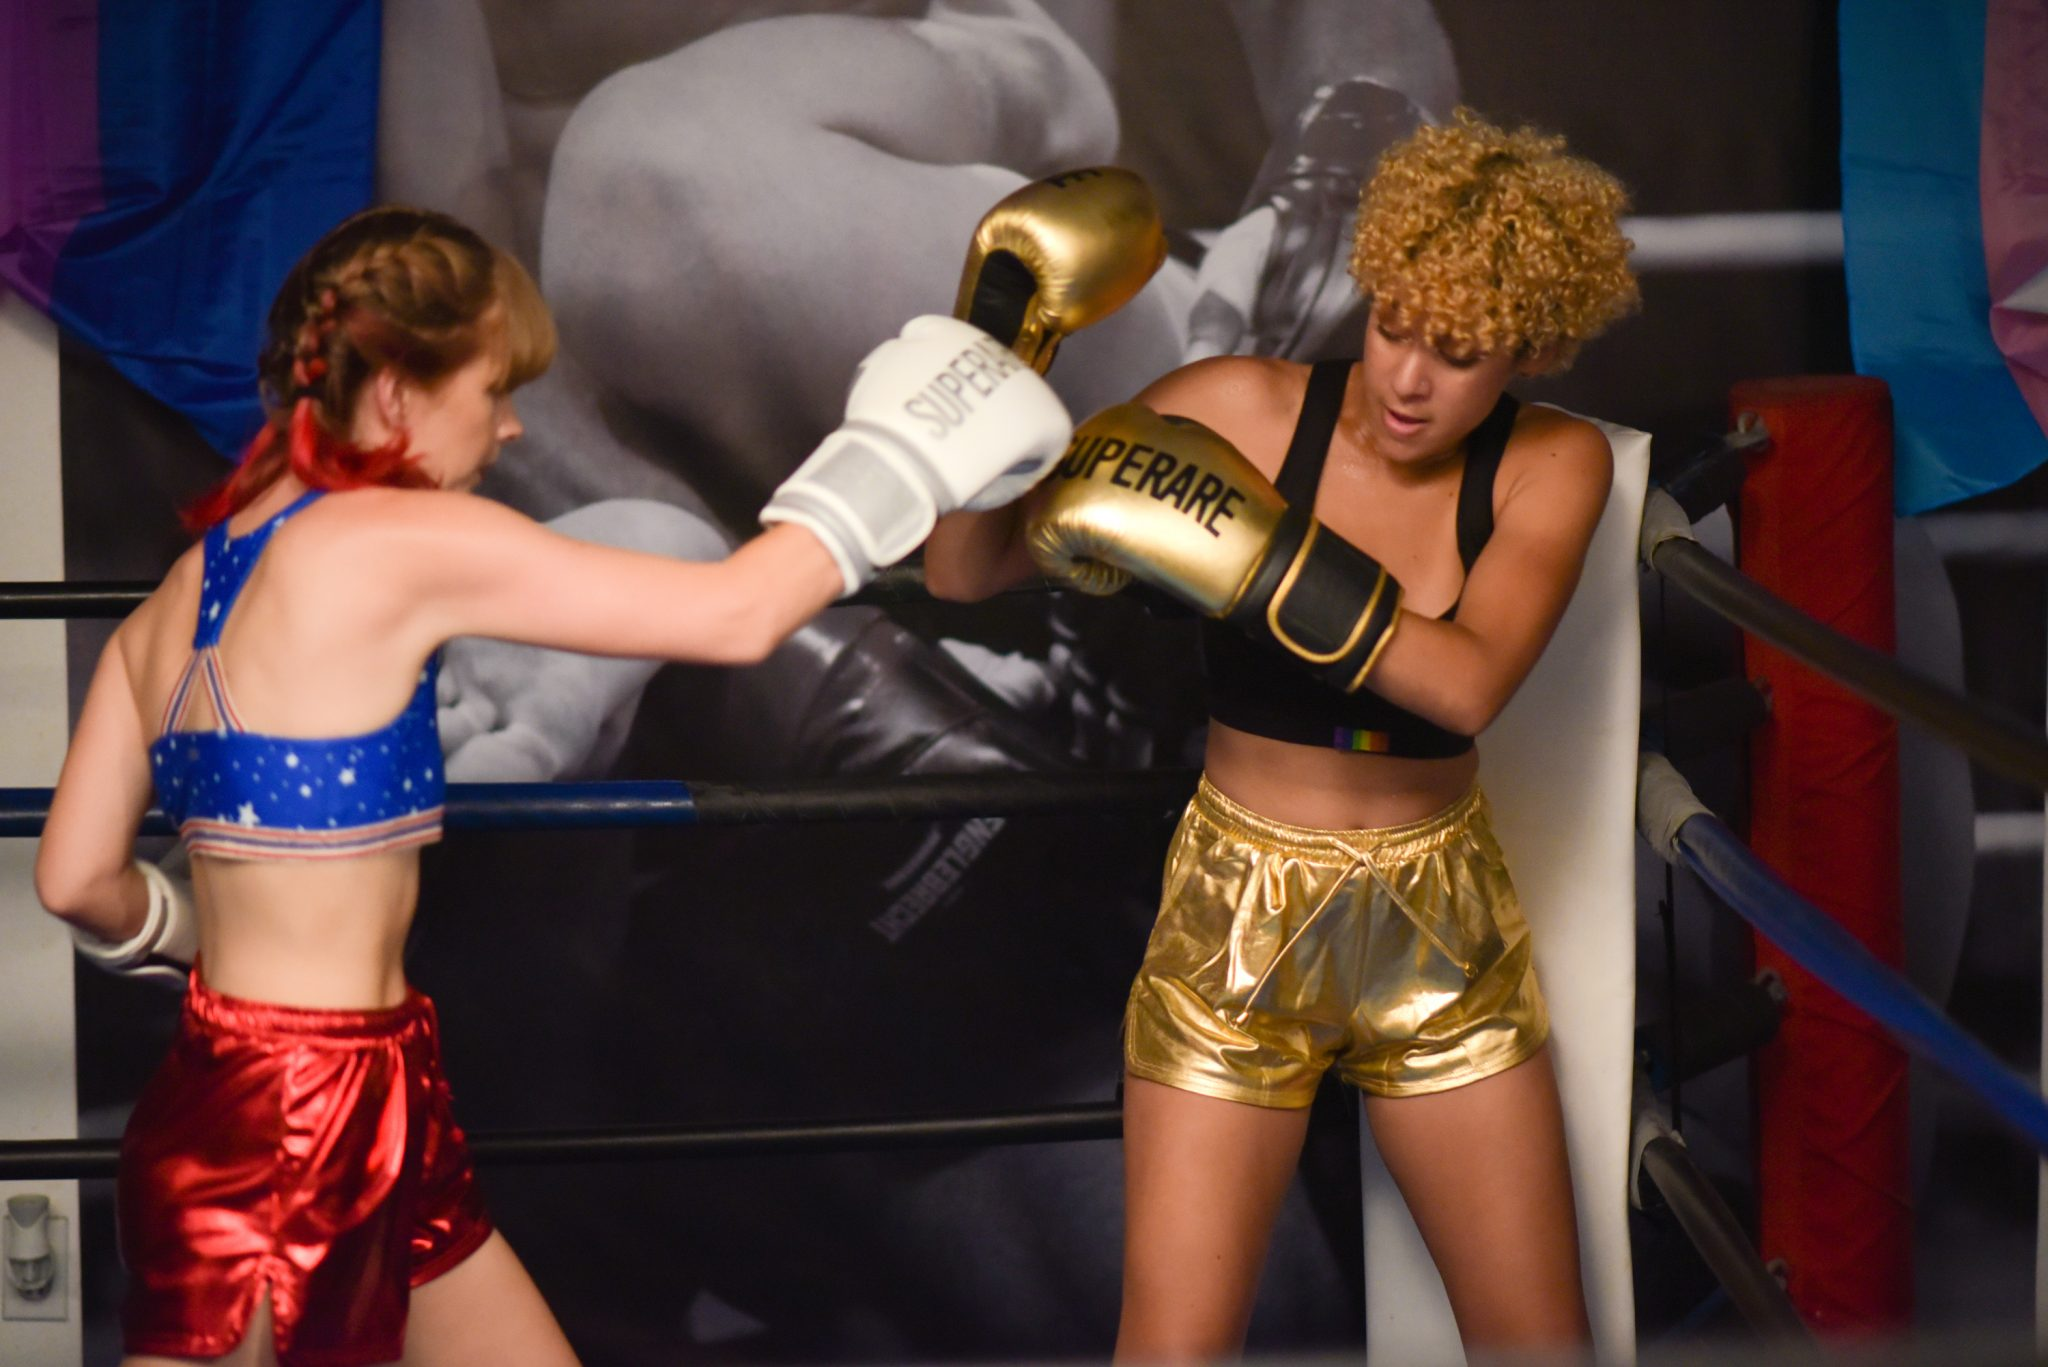 In a still from the video, Lucy and Moony Maroon spar in a boxing ring.